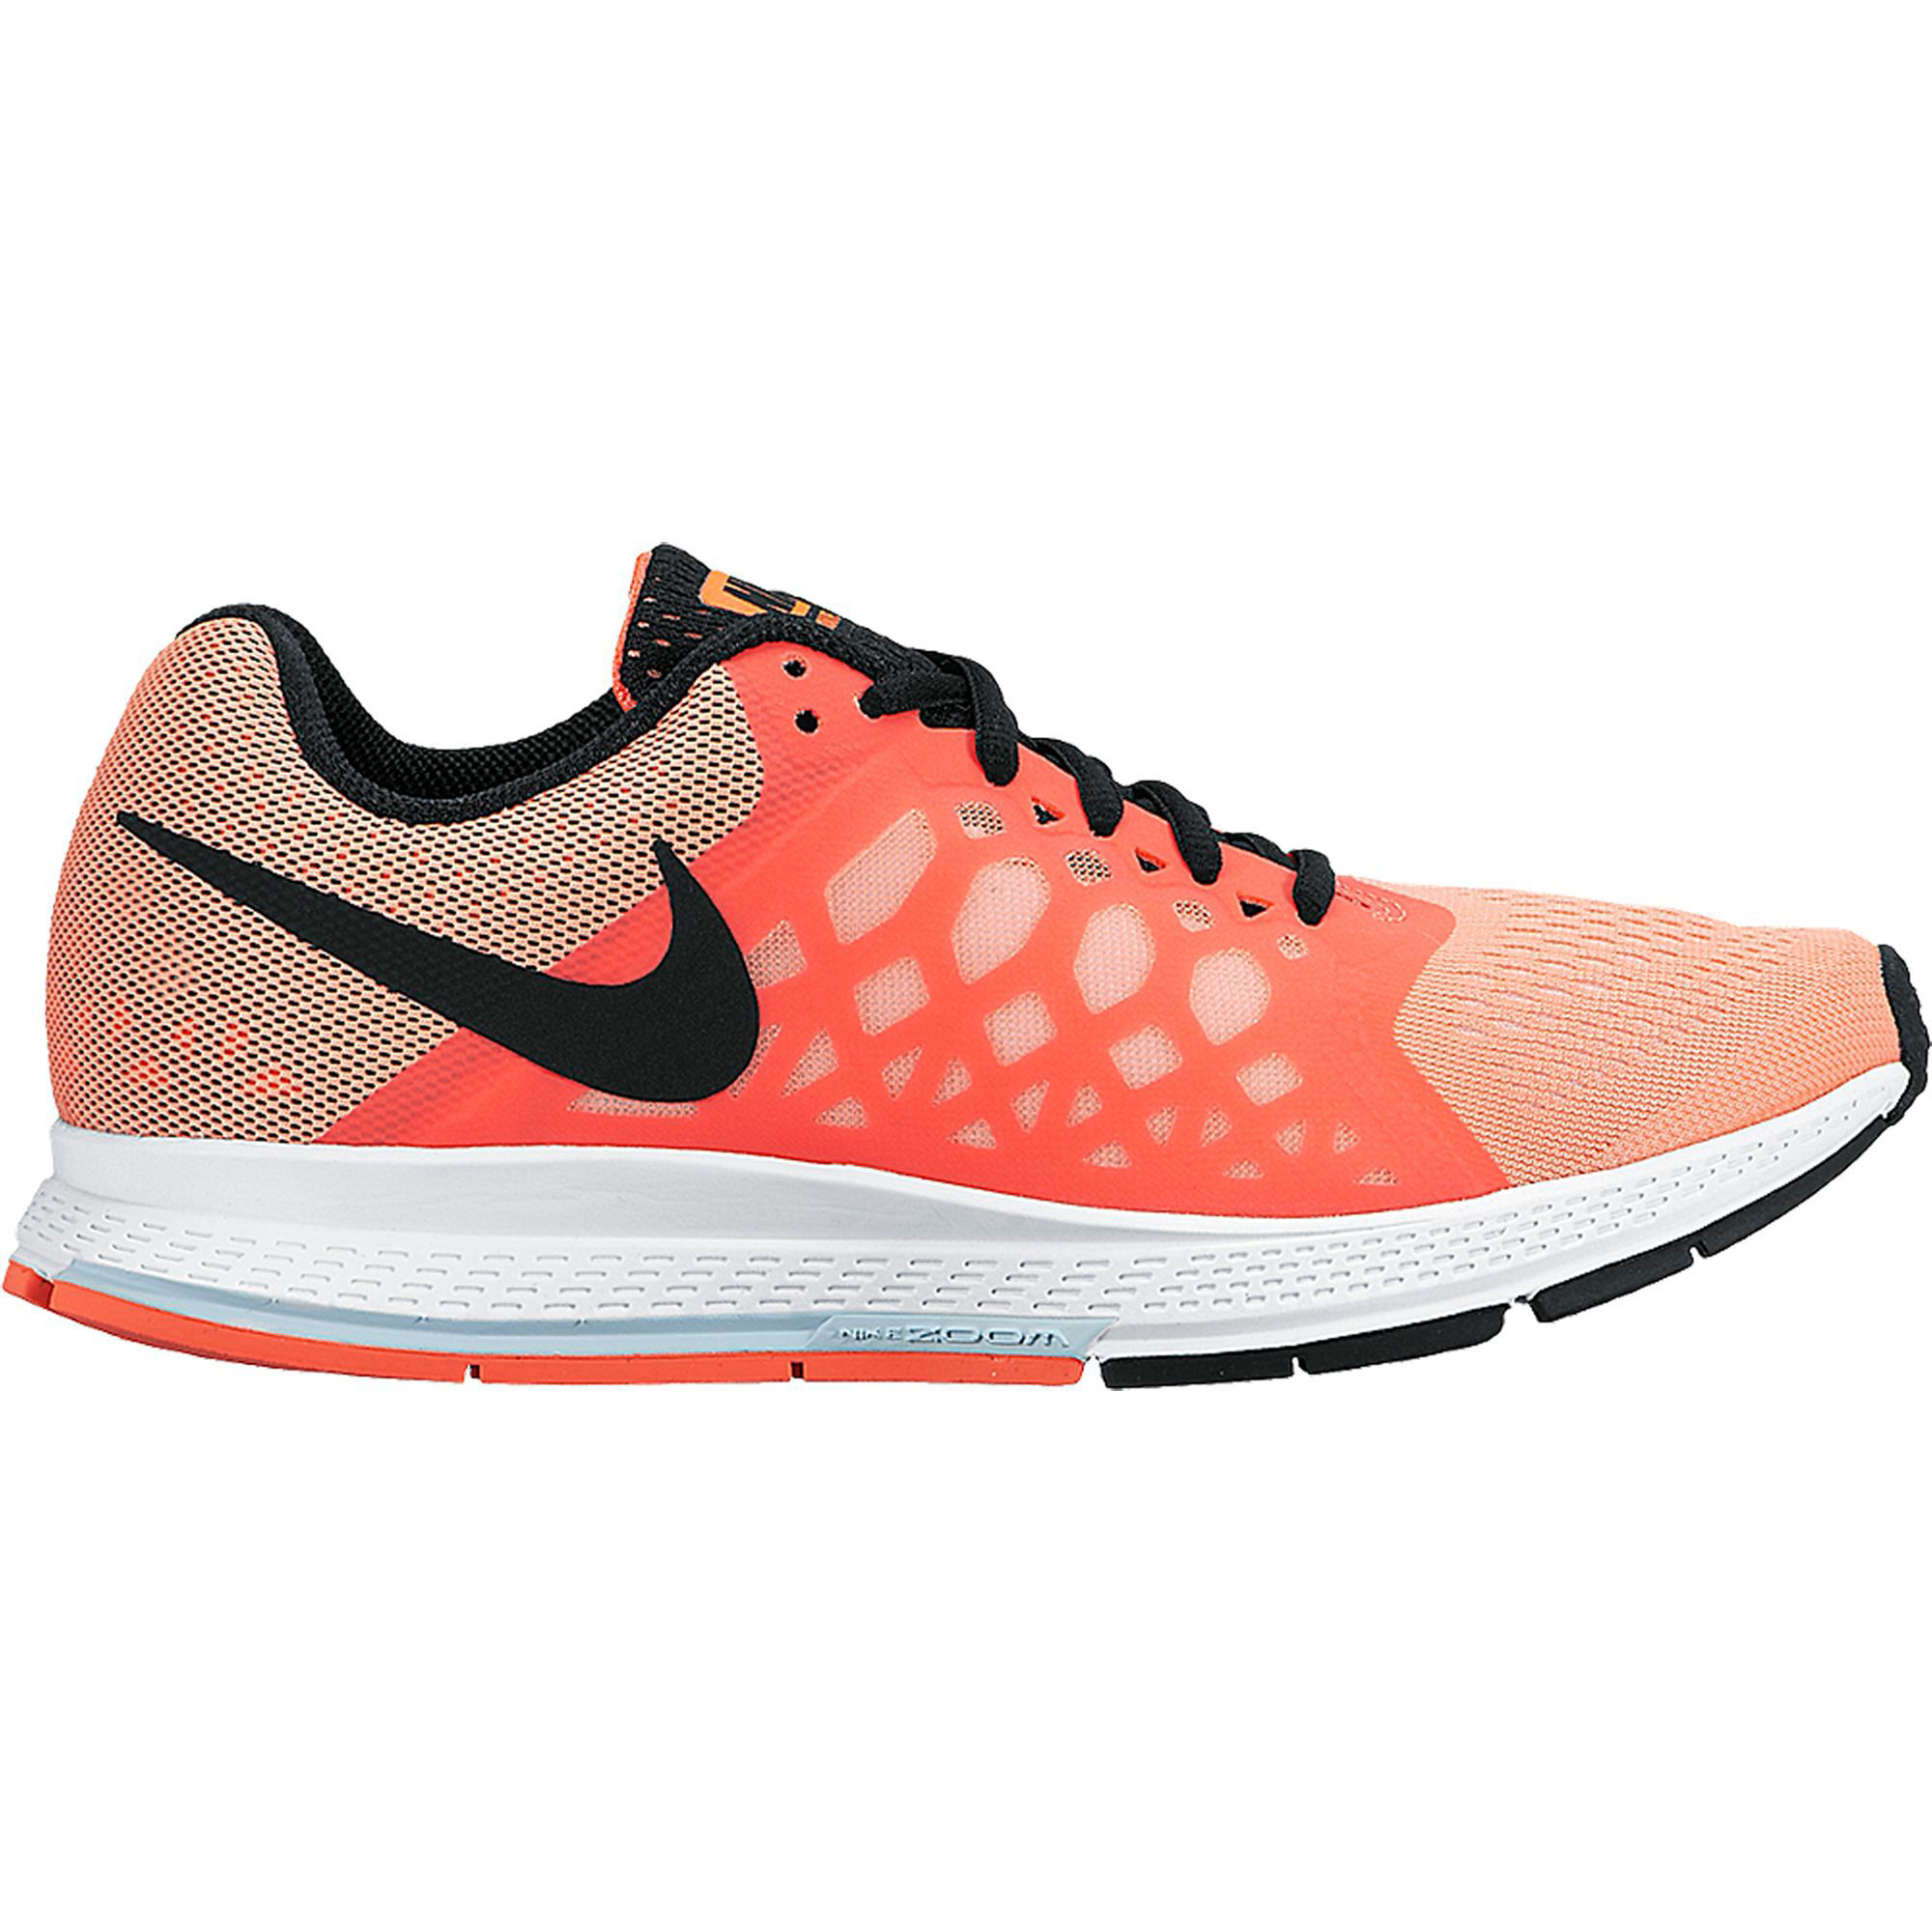 Elegant Nike Running Shoes Womens Pictures To Pin On Pinterest